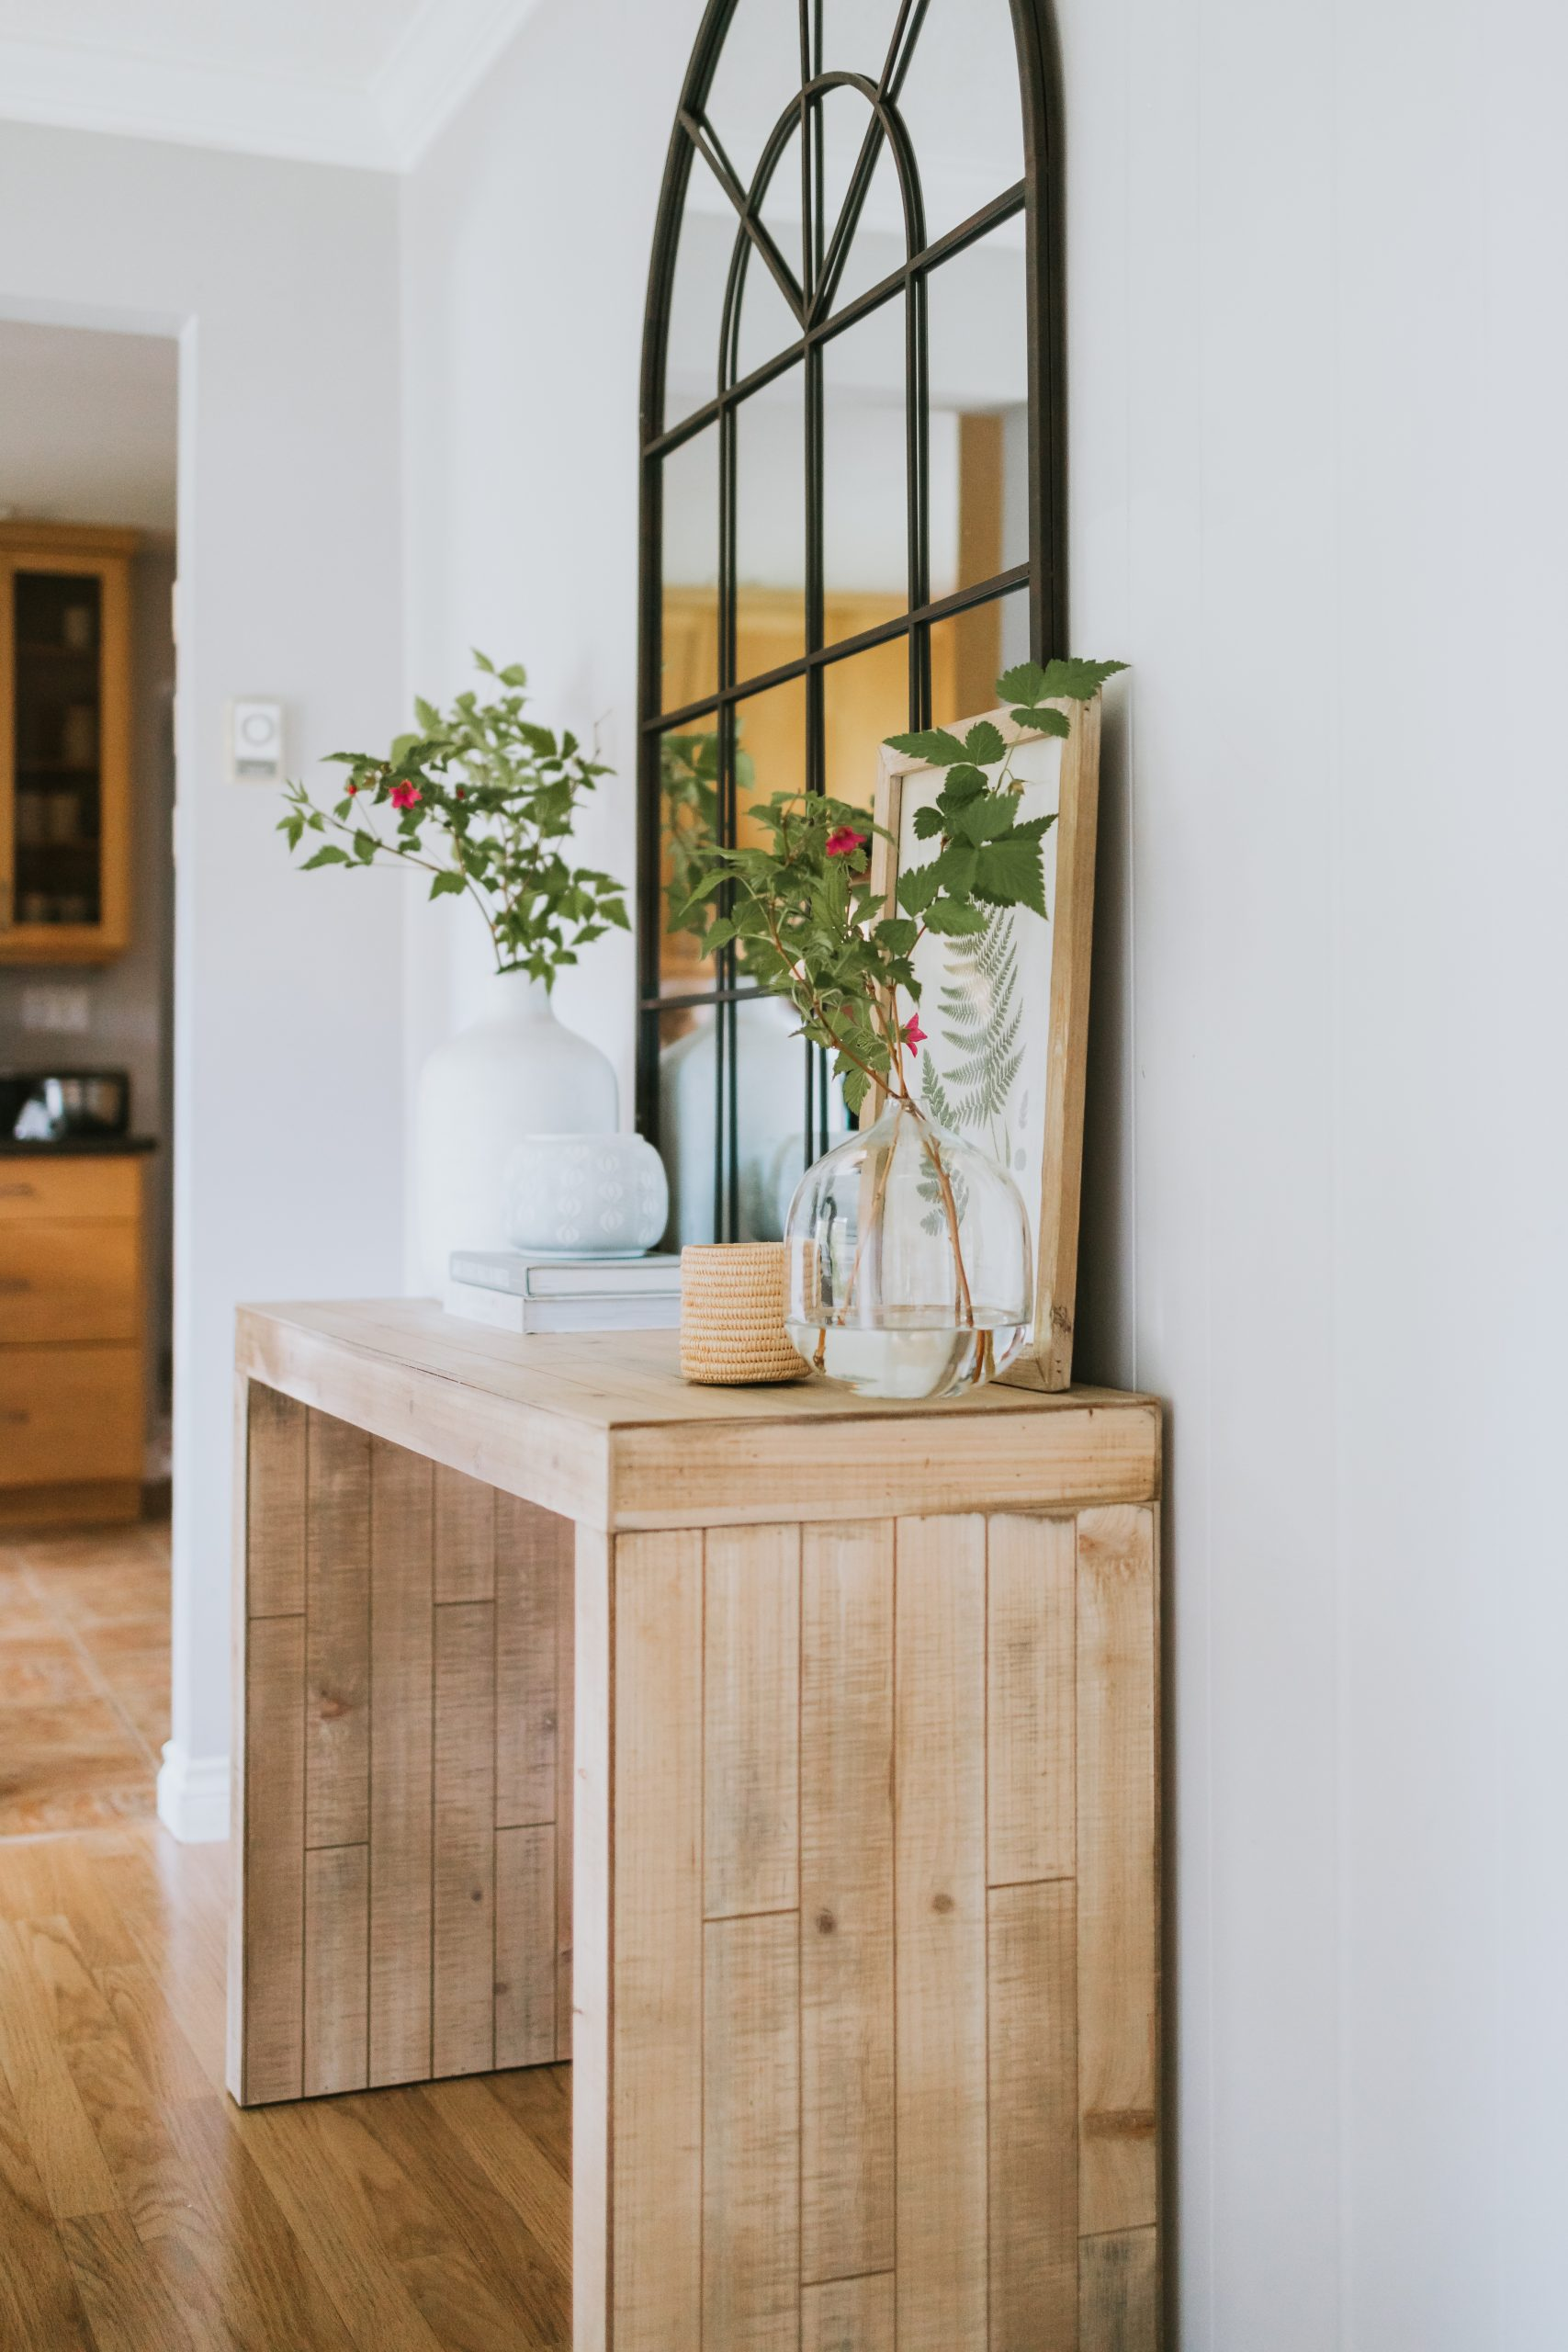 How To Strip and Whitewash Wood. My easy 4 steps to completely strip down a dark piece of furniture. It can be wood, MDF, Laminate or Fibreboard. If there's a will, there's a way! Also my whitewash mixture to get the perfect stained look.